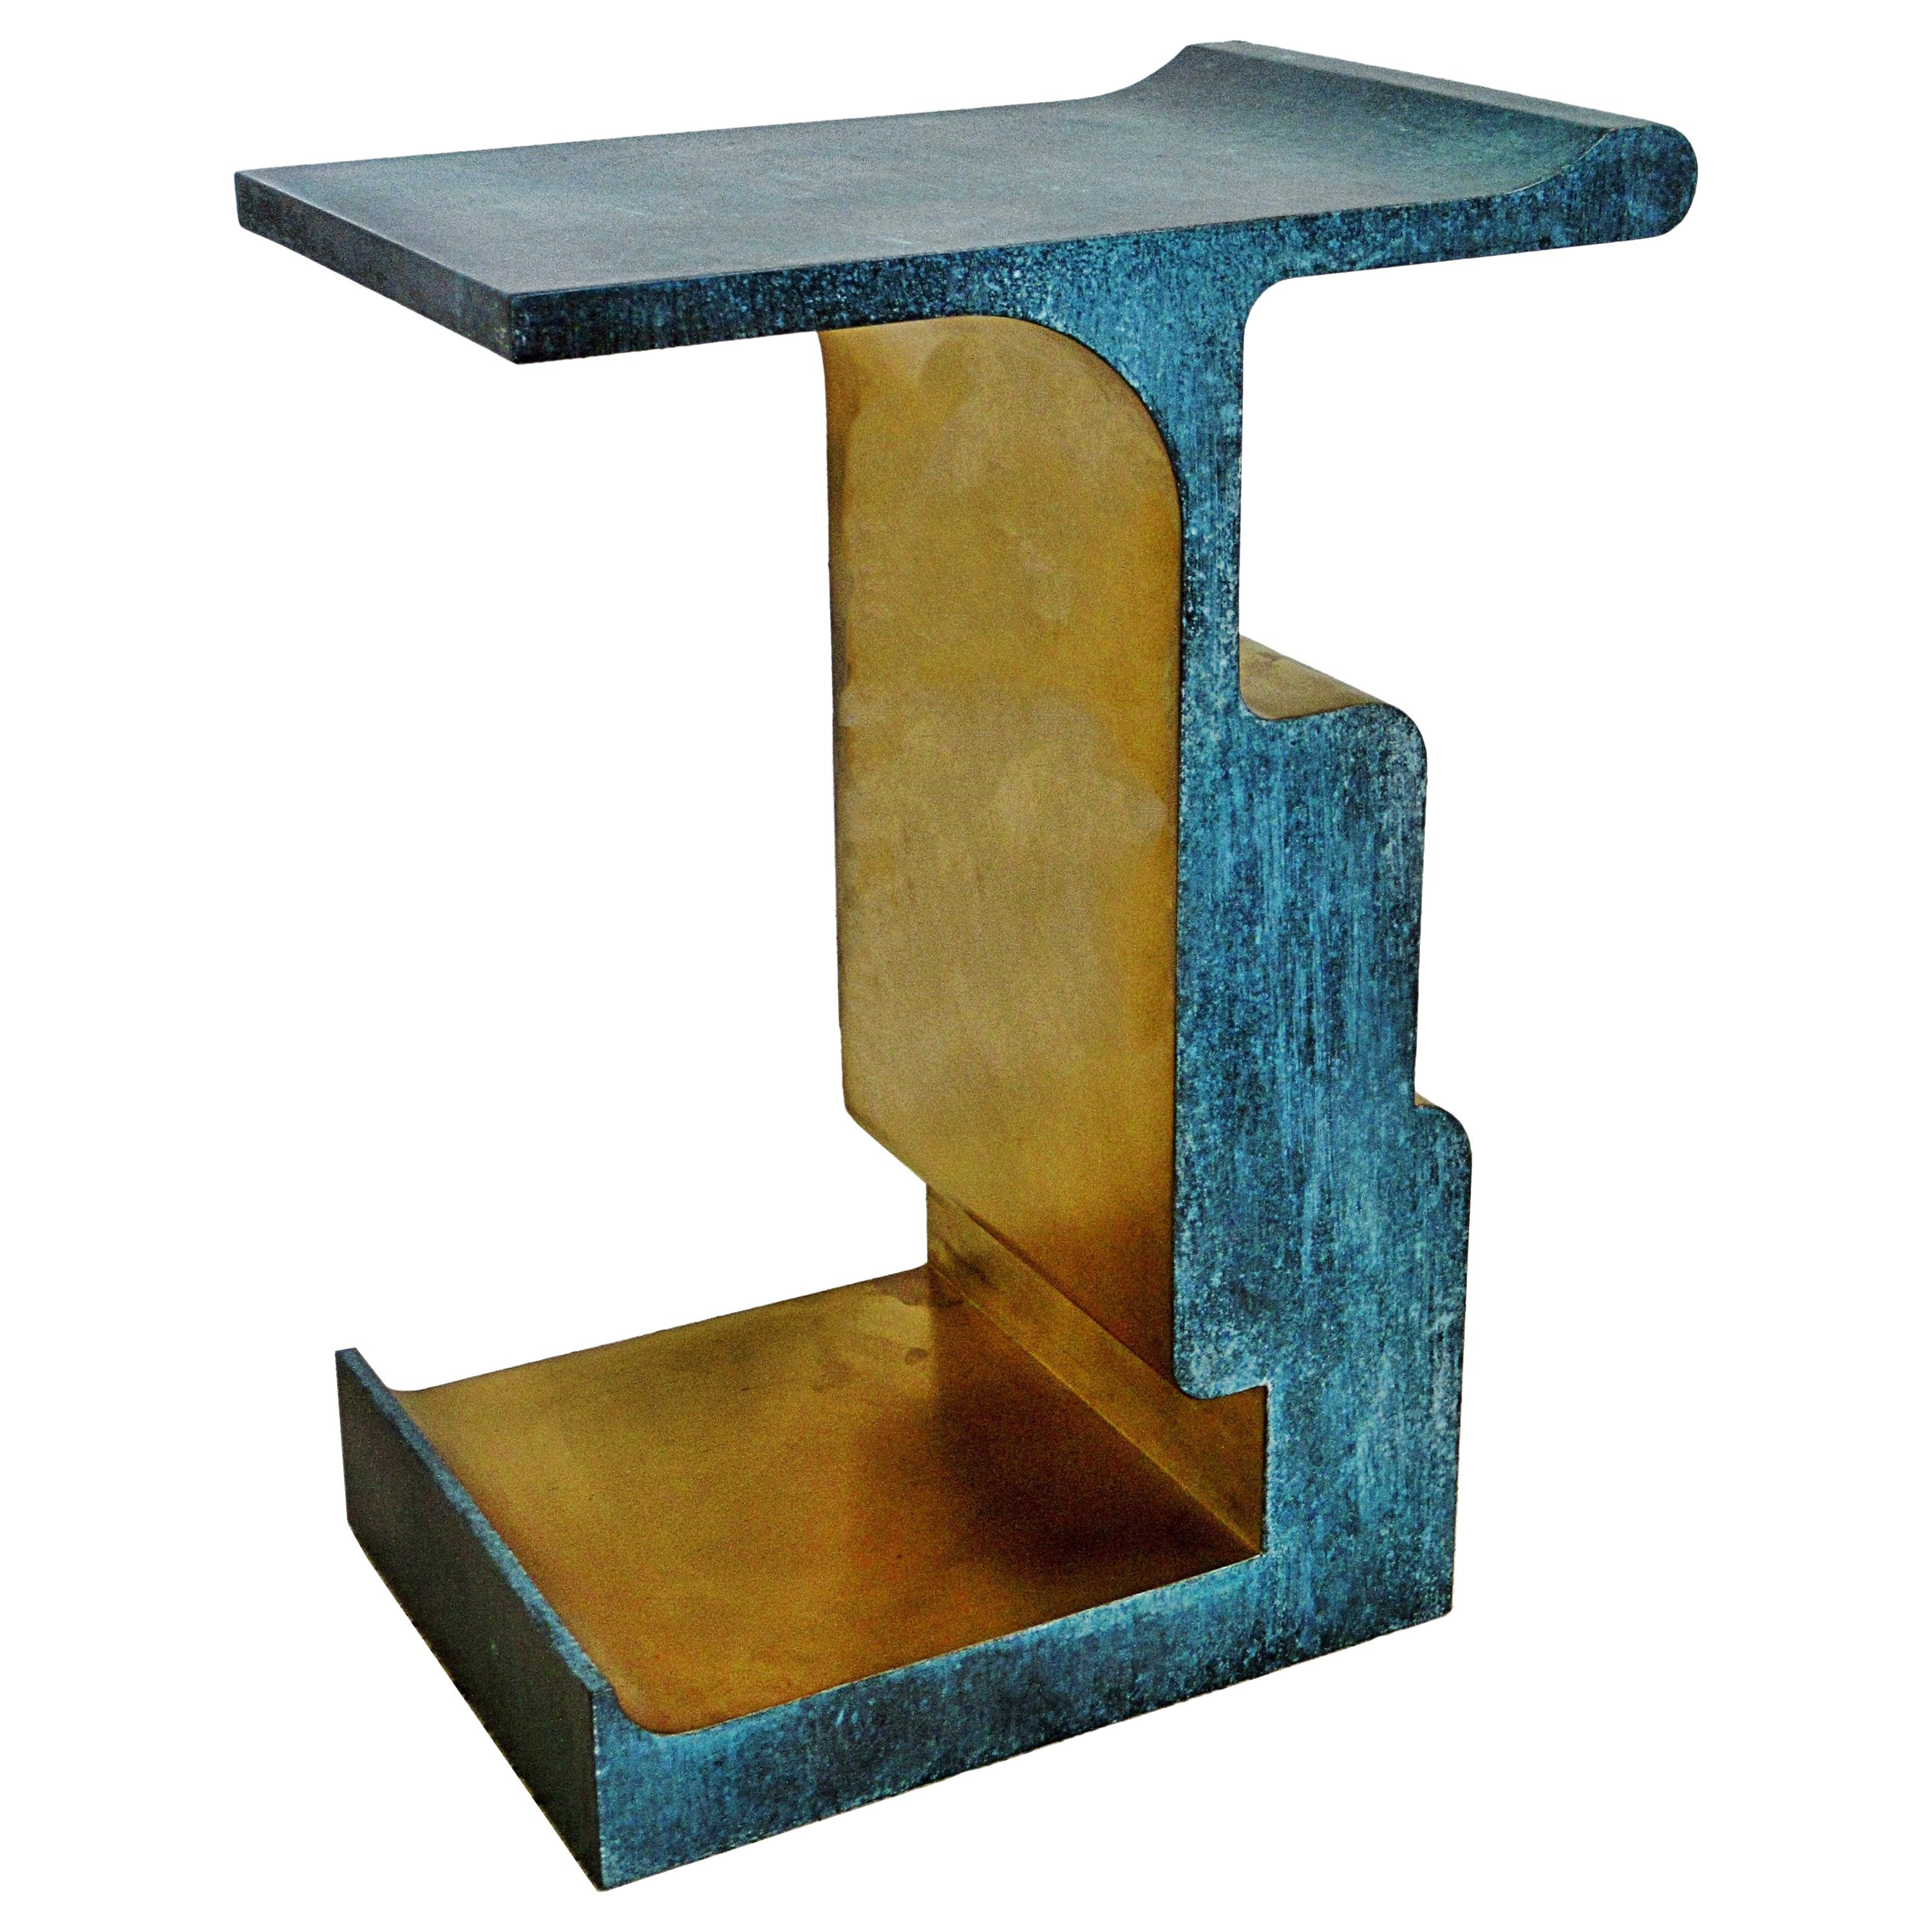 Rare Bronze and Patinated Bronze XiangSheng Table #1, Studio MVW